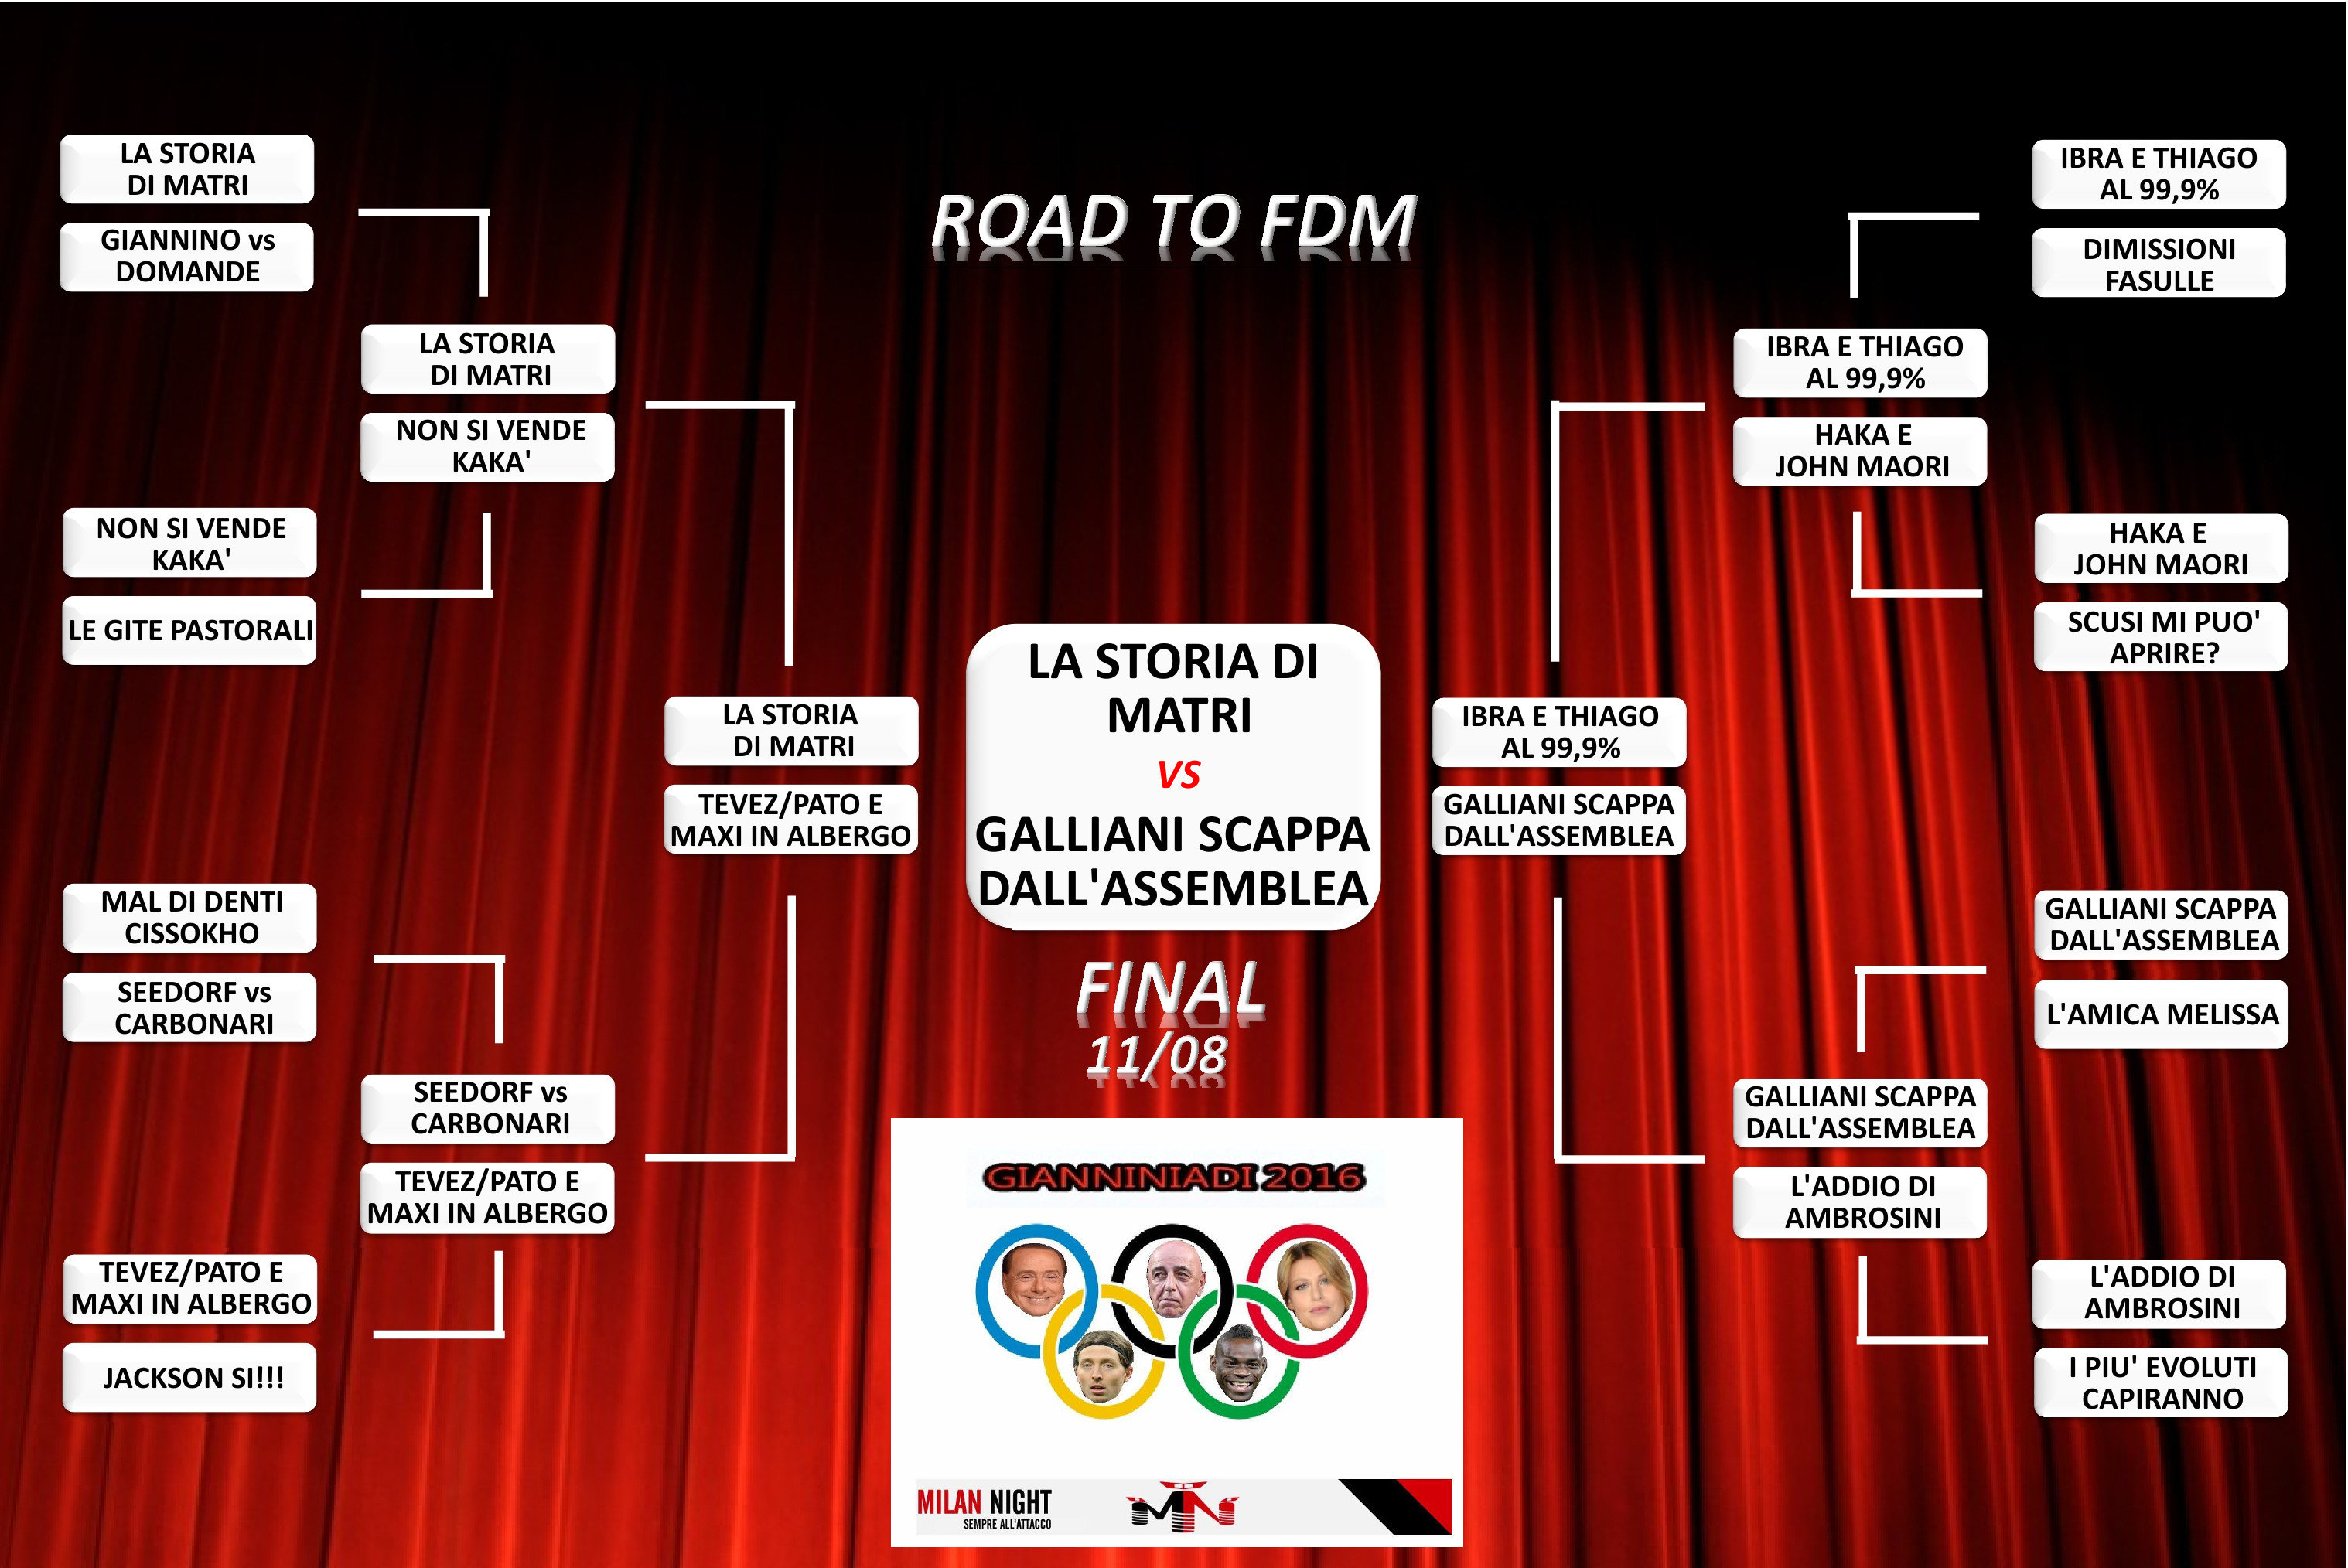 road to FDMfinale